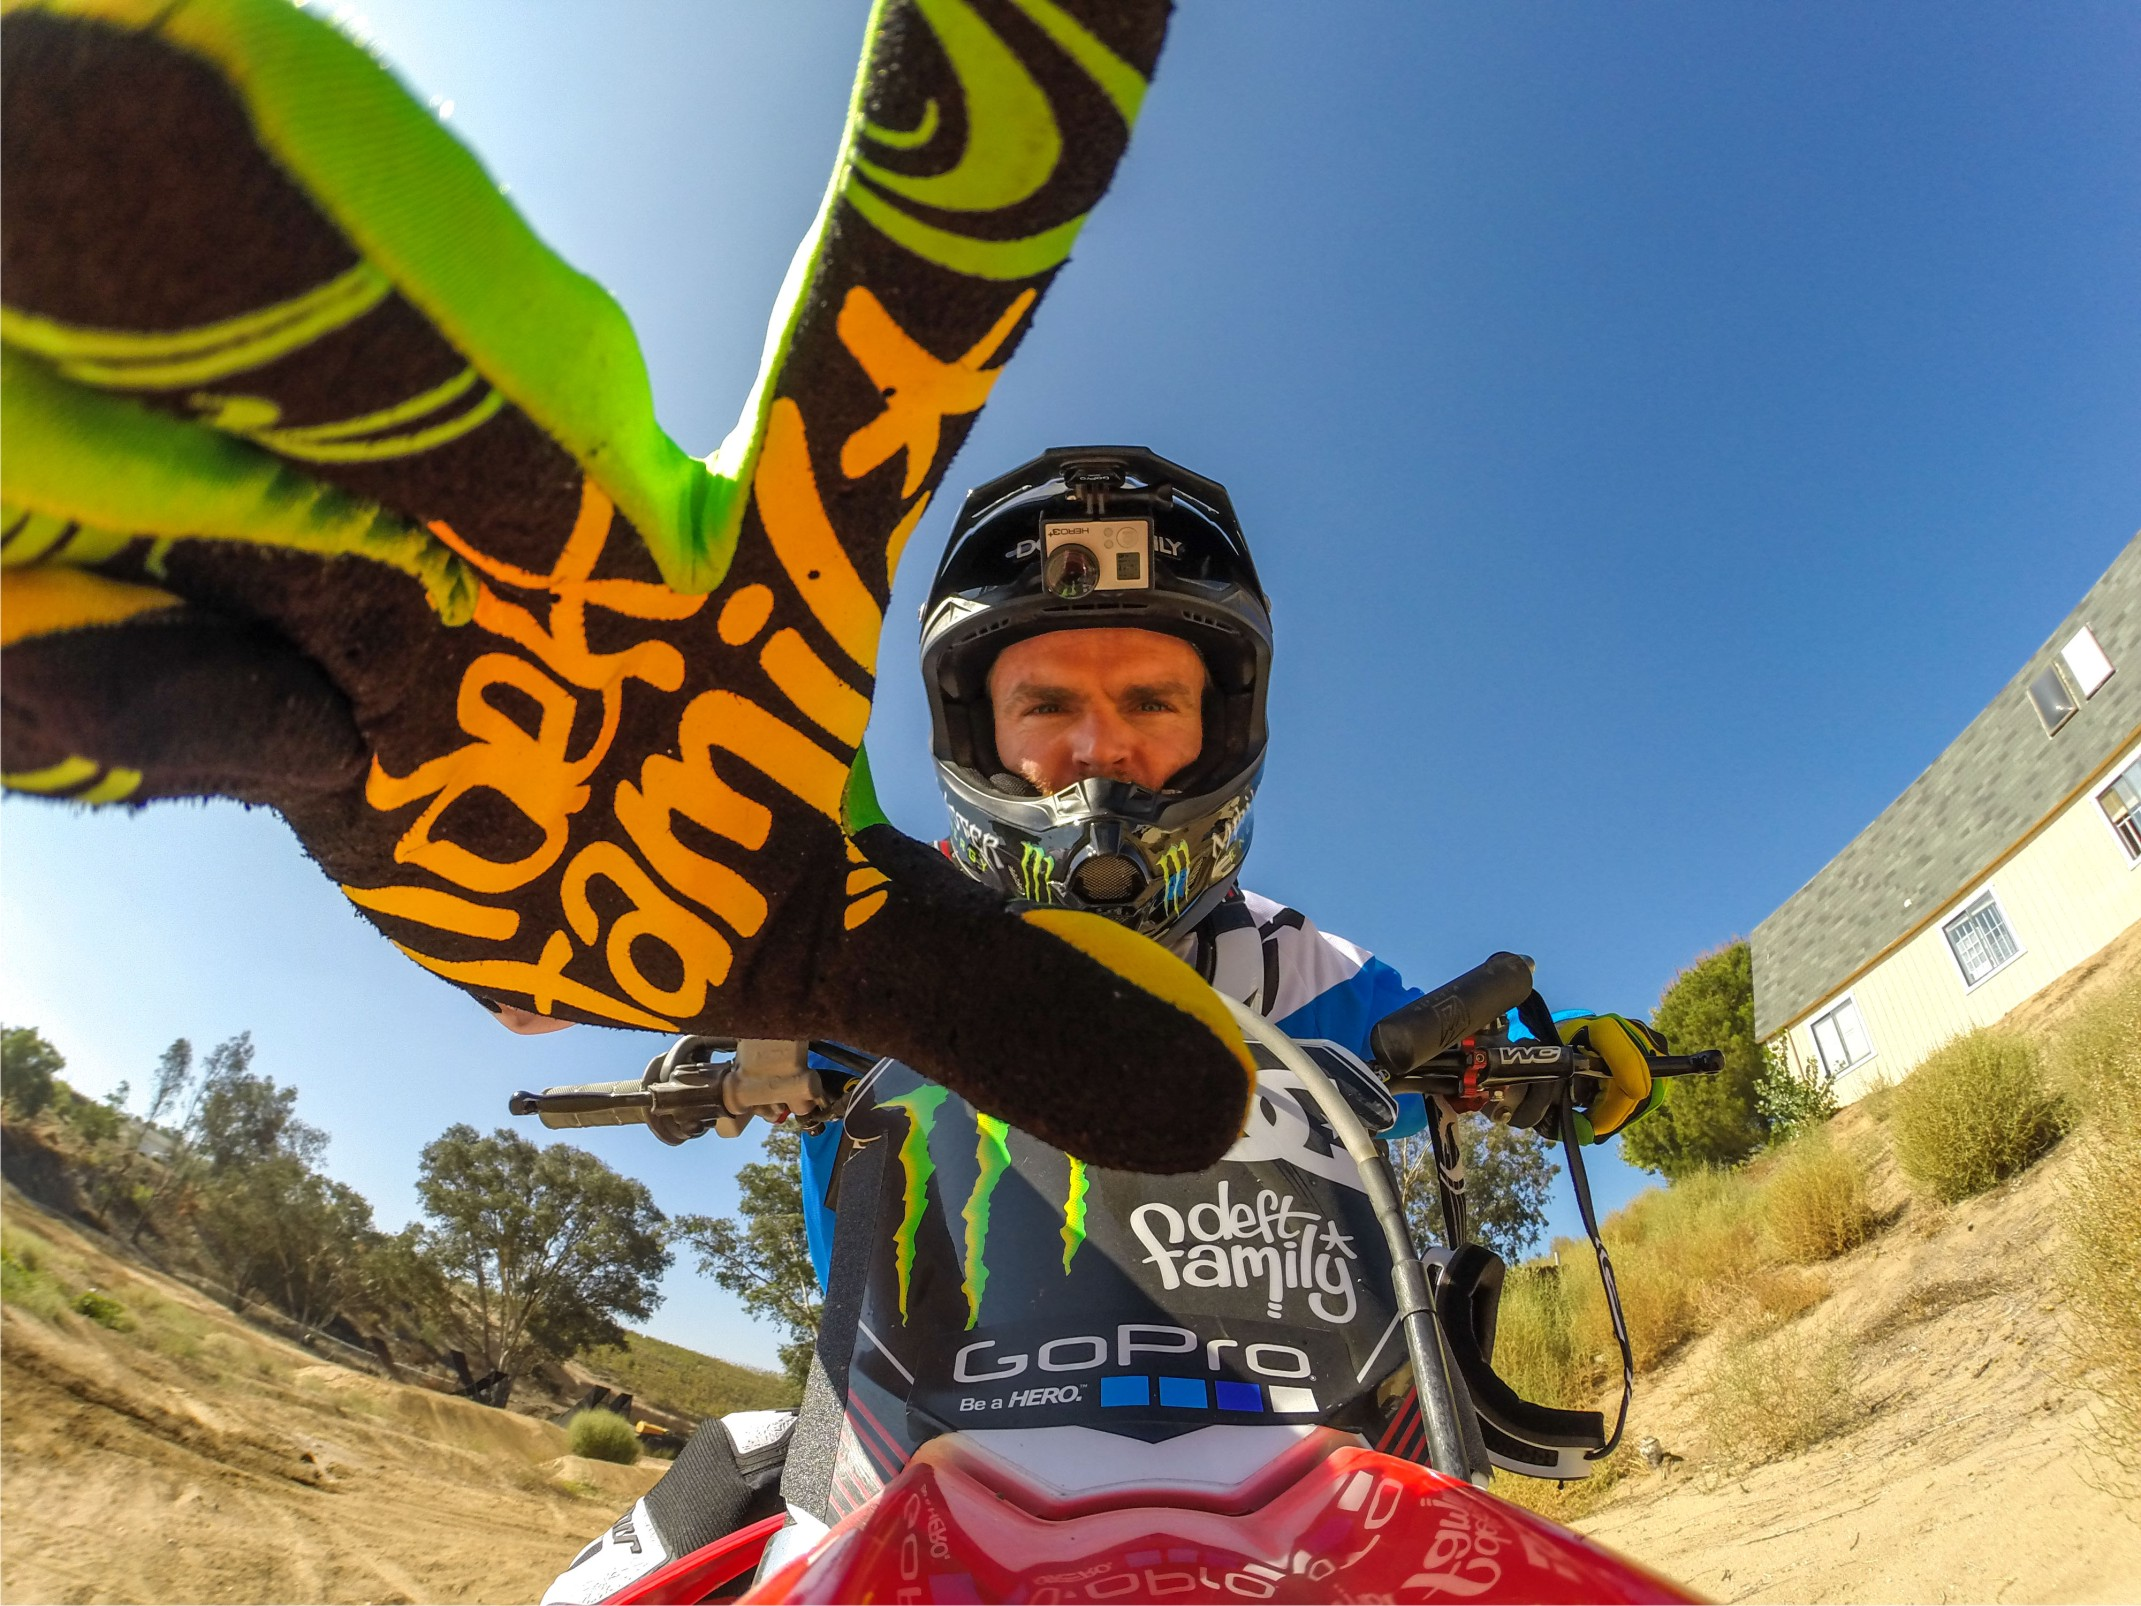 Nate Adams on the future, Freestyle Motocross and more